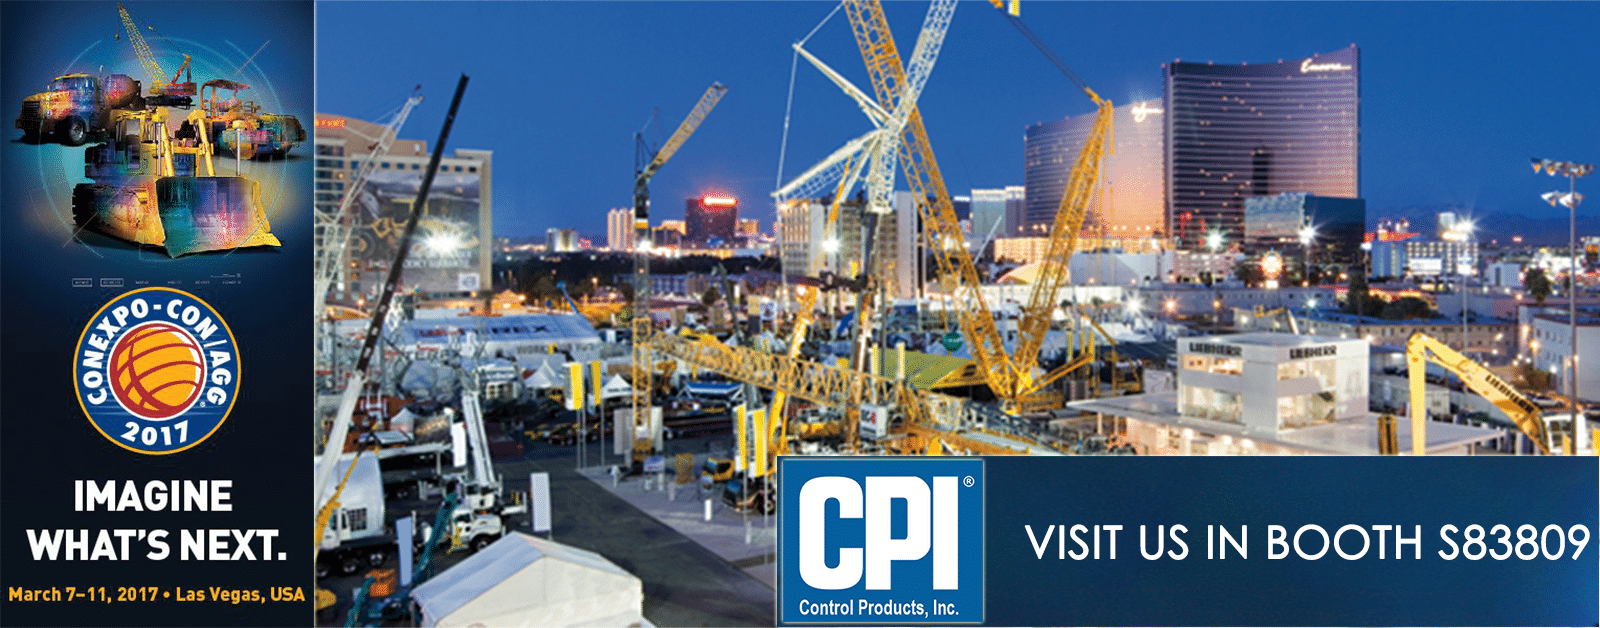 Meet CPI at CONEXPO Booth S83809